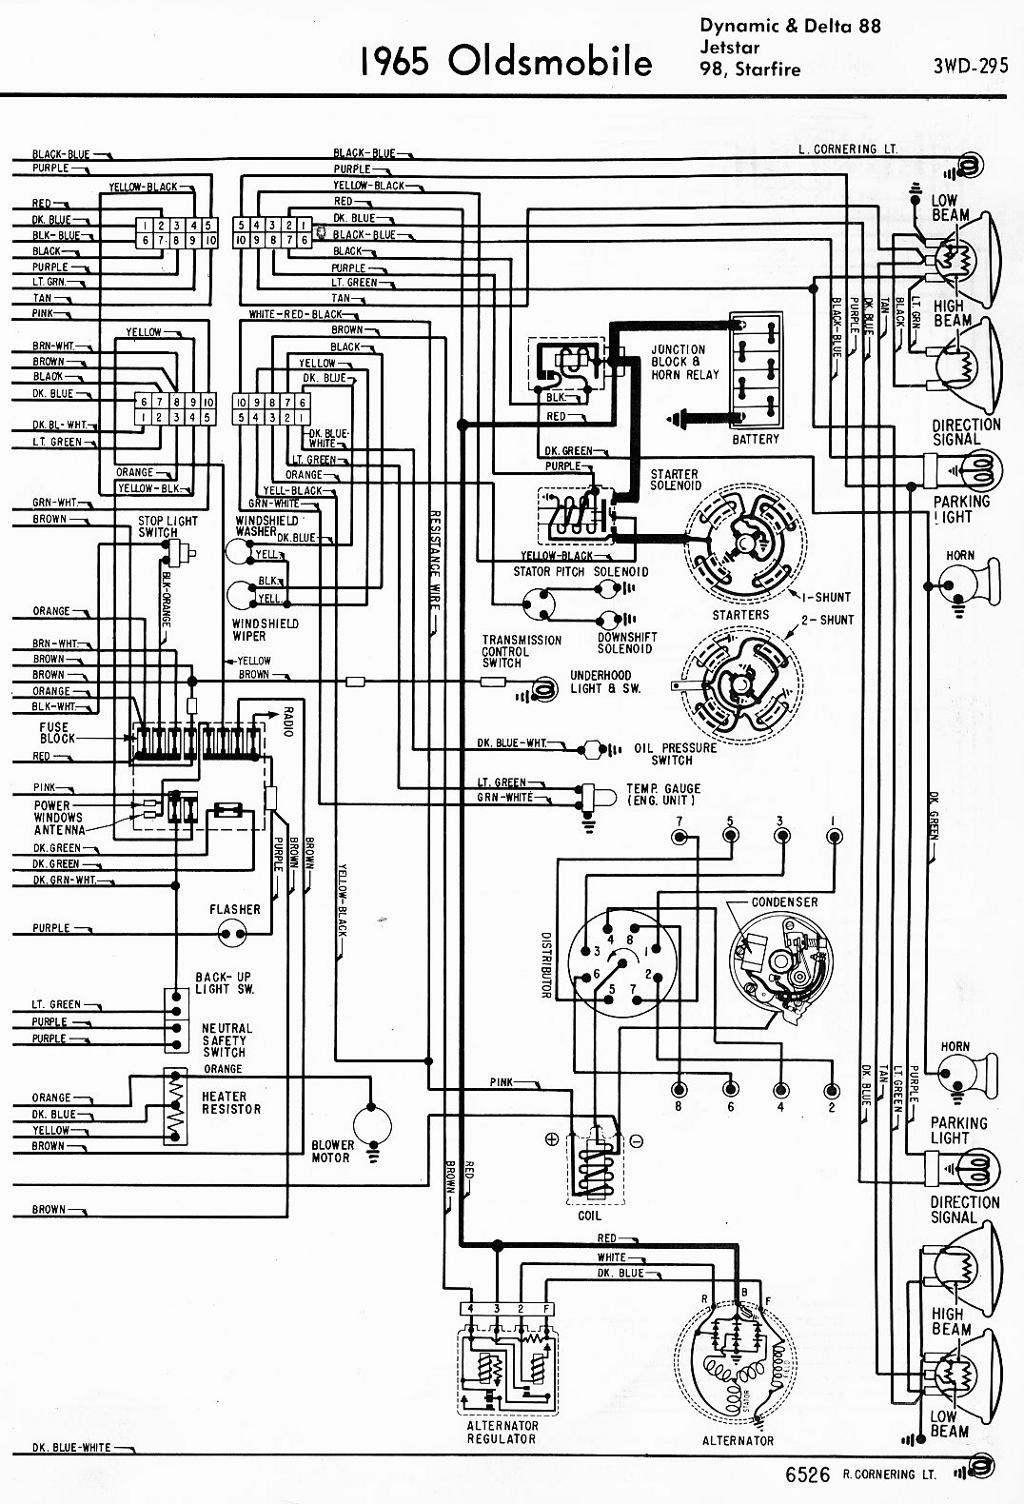 Free Schematics Schematic Diagram Download T Daihatsu Wiring Libraries Delta Truck Diagrams Scematicdaihatsu